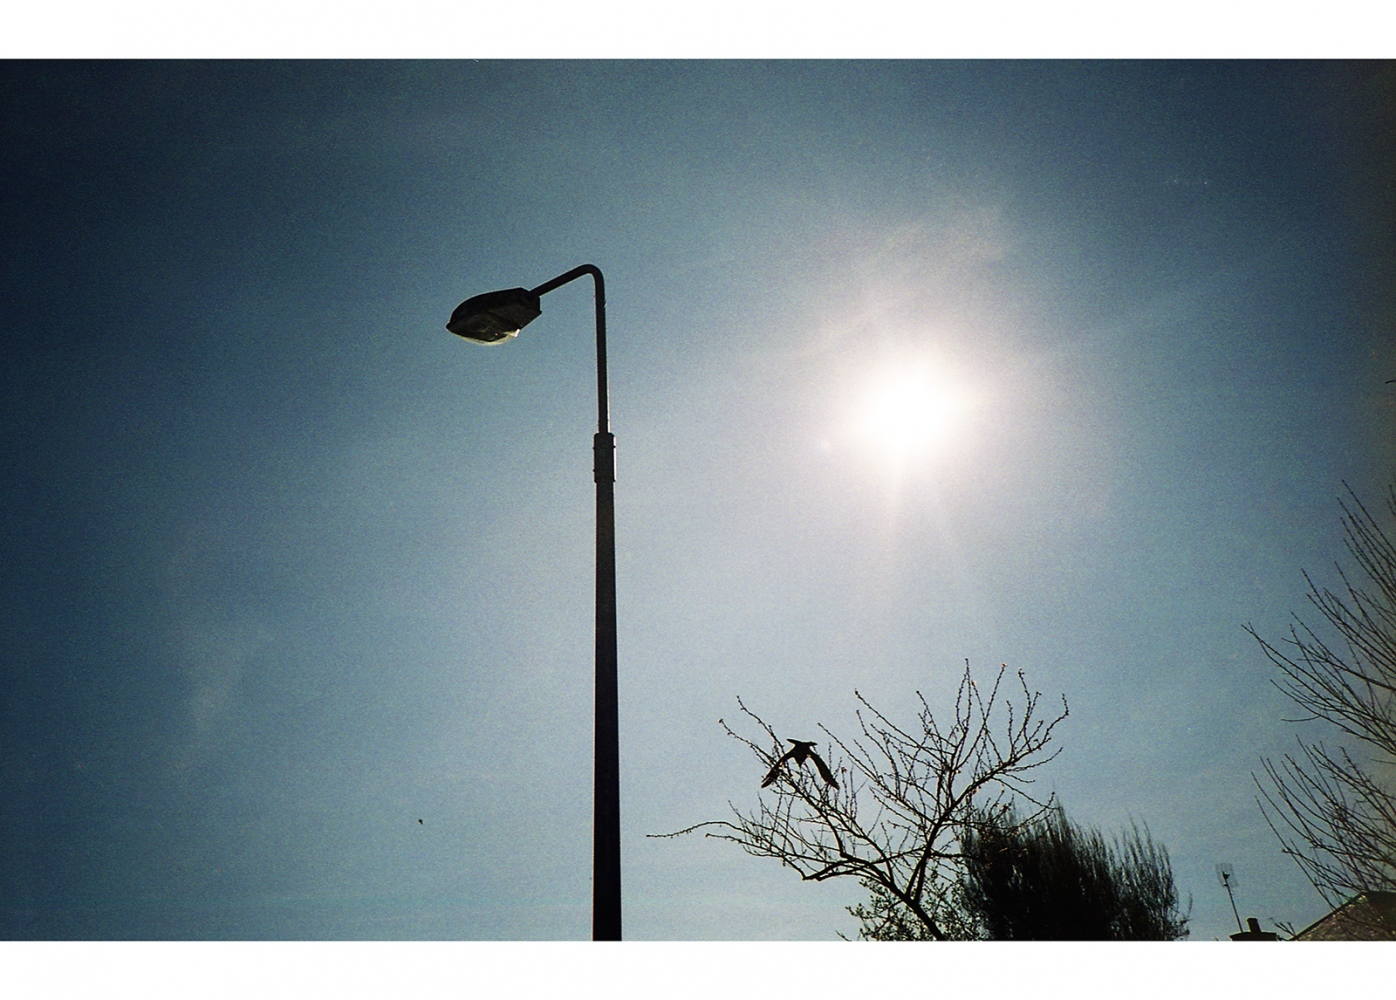 Bird, Lamppost, and Sky